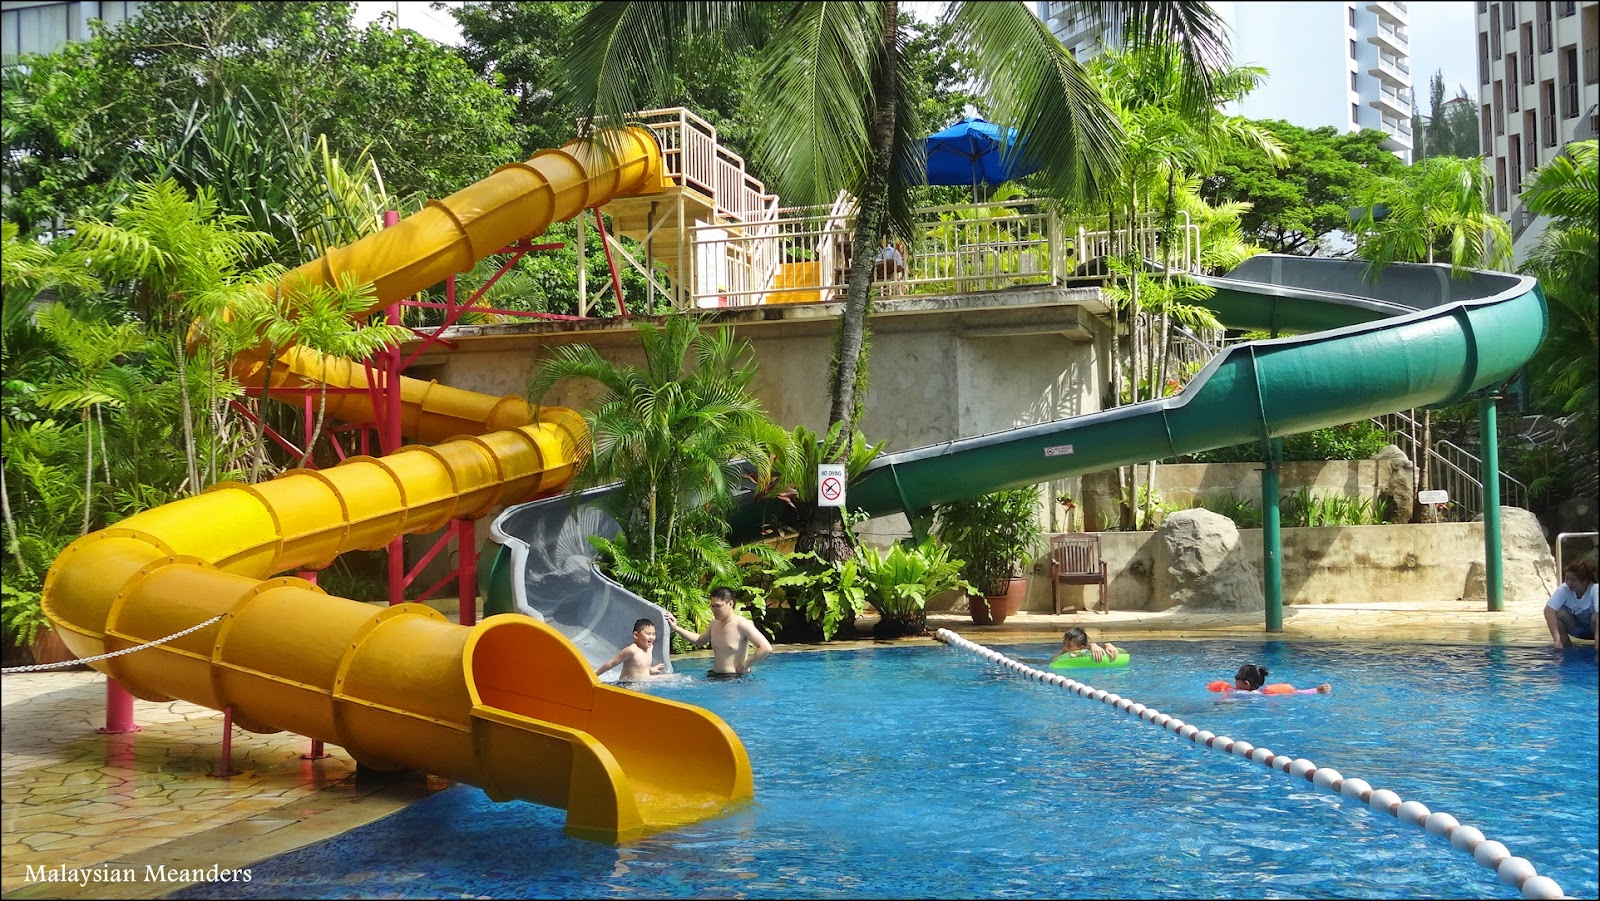 Malaysian Meanders Swim Parties At The Parkroyal Resort